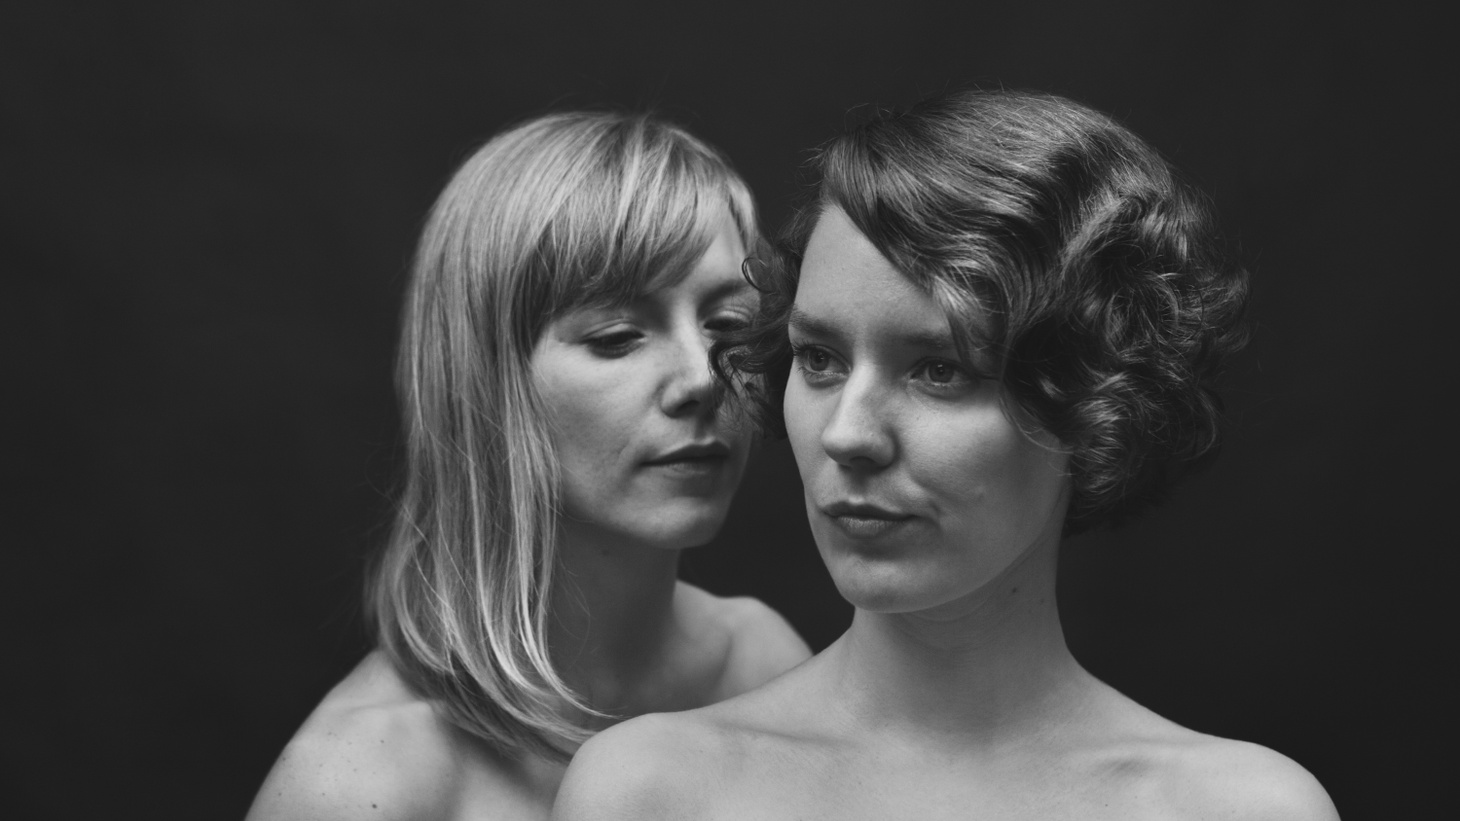 My Bubba has toured with Damien Rice, co-written music with Matthew E. White and gone karaoke singing with Gillian Welch. But it's the Scandinavian folkies' effortless raw style that is captivating.